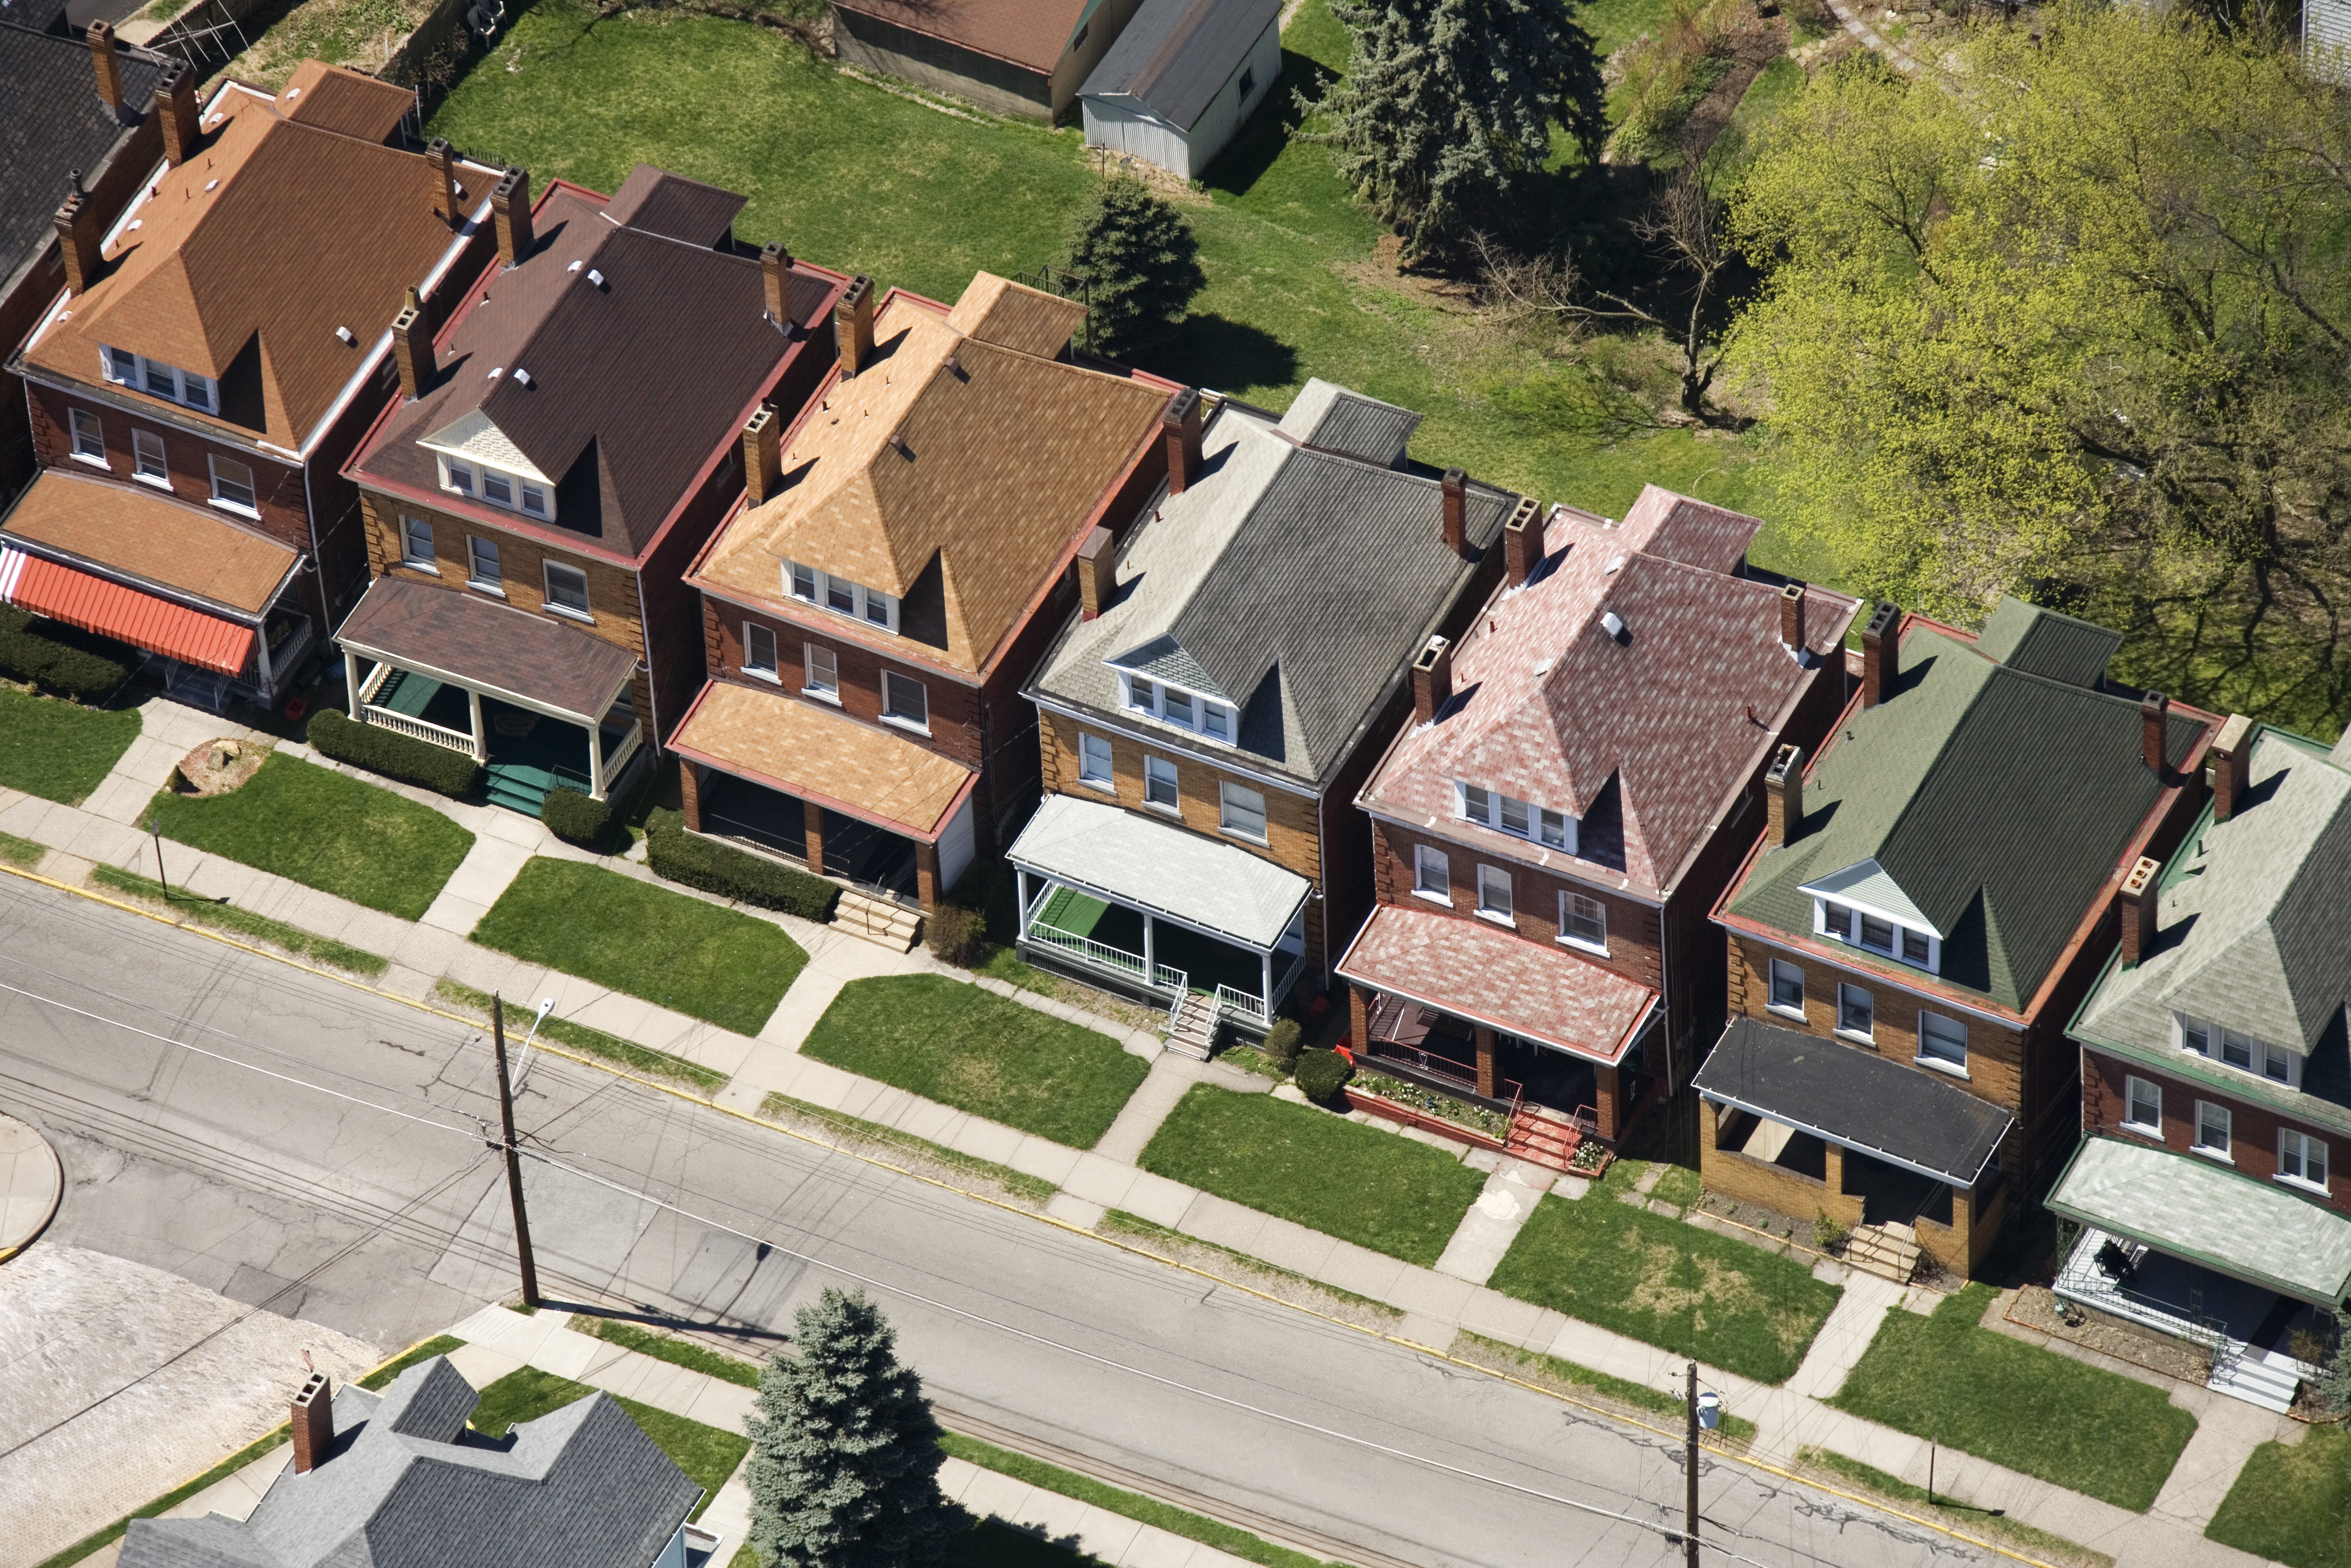 A row of homes in Pittsburgh, Pennsylvania. Pittsburgh is one of several cities working directly with NextDoor to improve public safety.